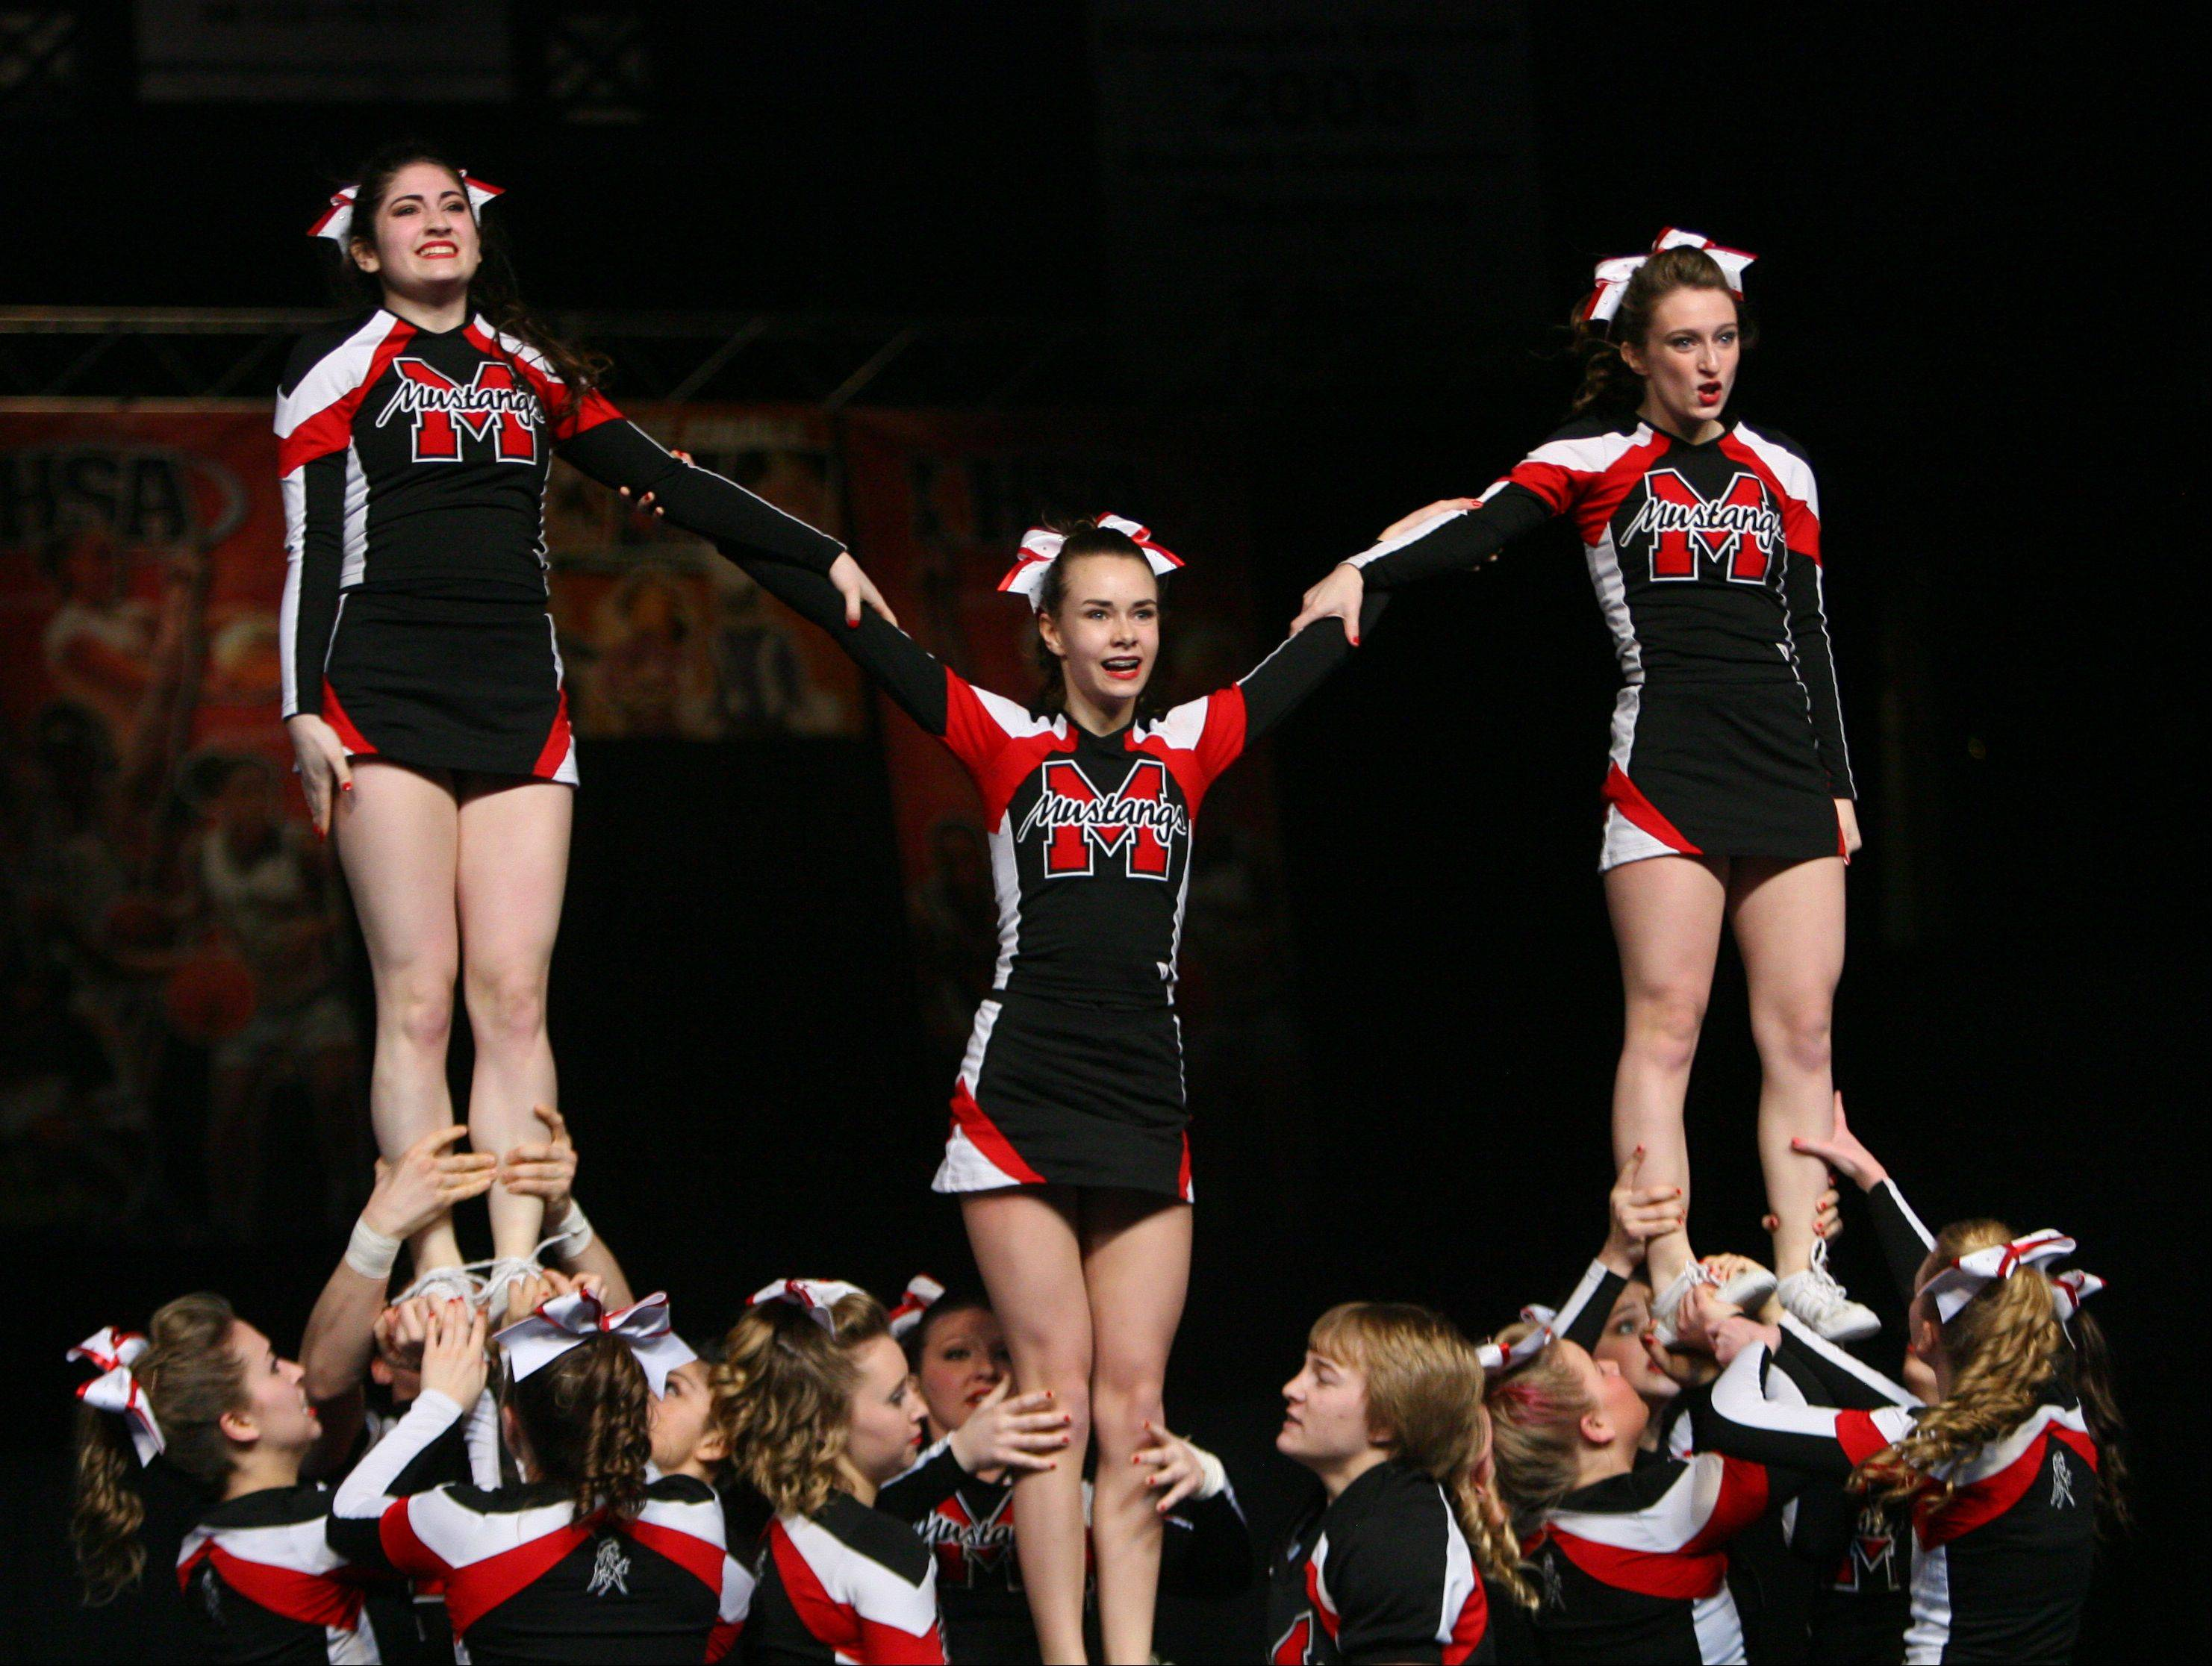 Mundelein High School participates in the IHSA Competitive Cheerleading finals on Saturday, Feb. 2 at the U.S. Cellular Coliseum in Bloomington.